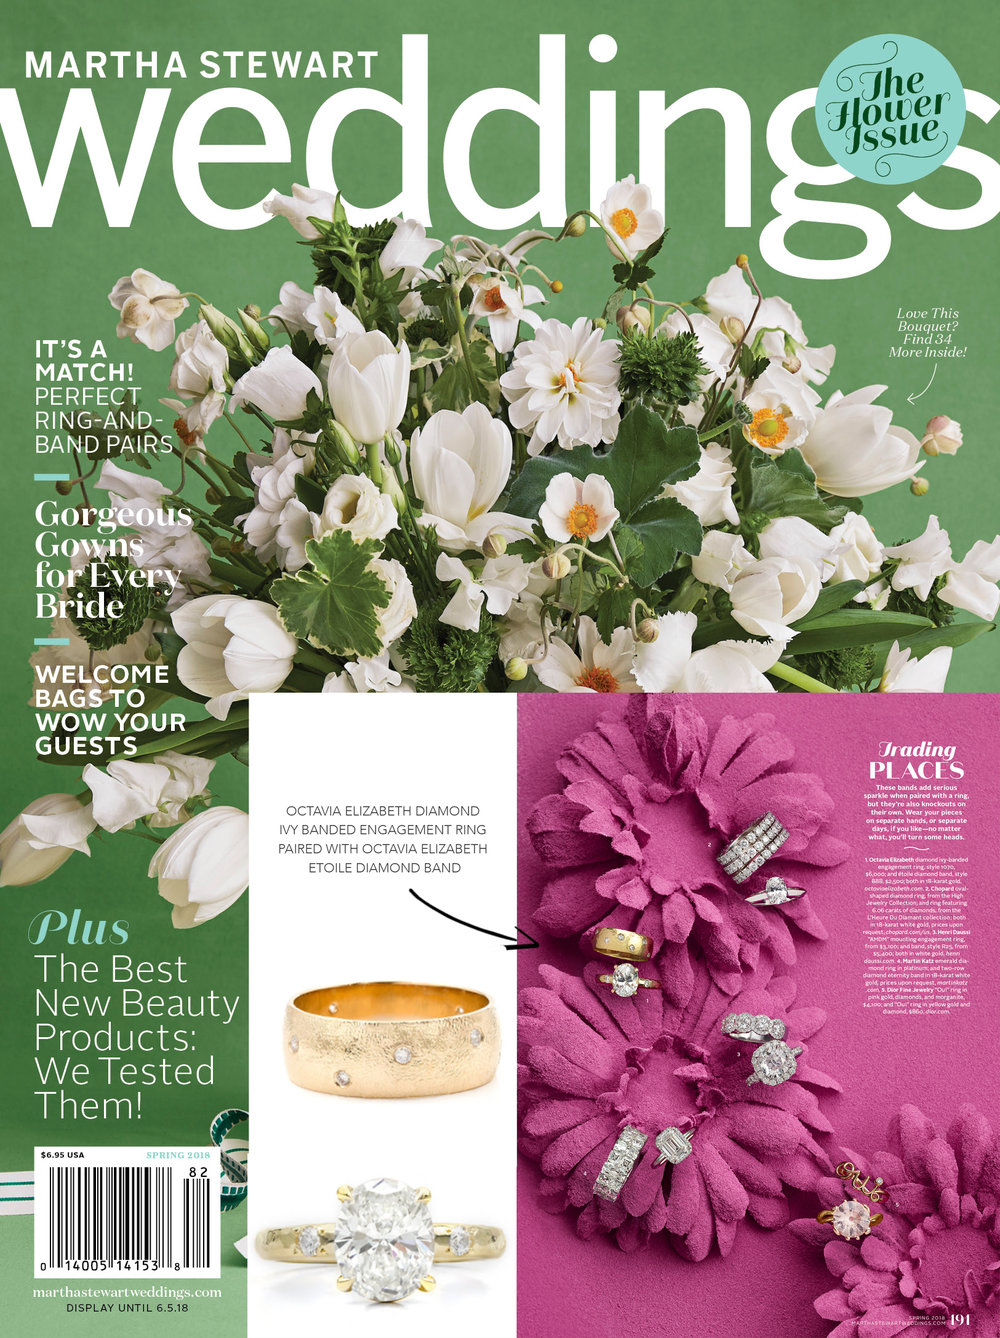 Flower Issue | Spring 2018